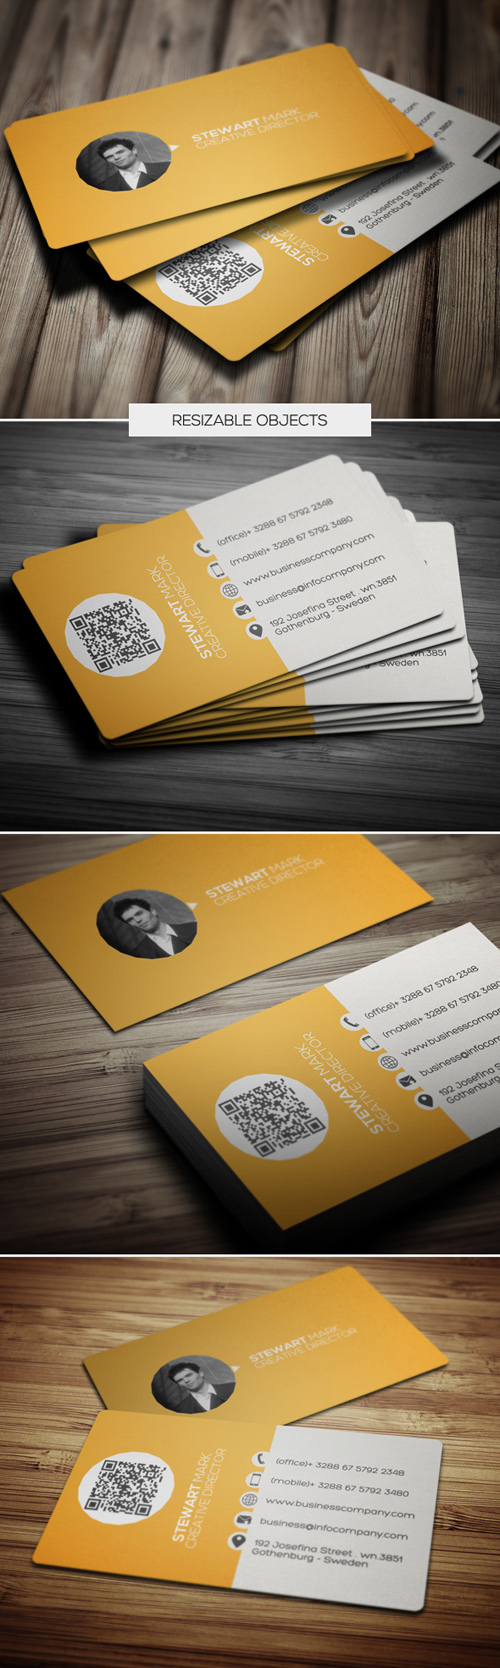 Creative Business Cards Design-8